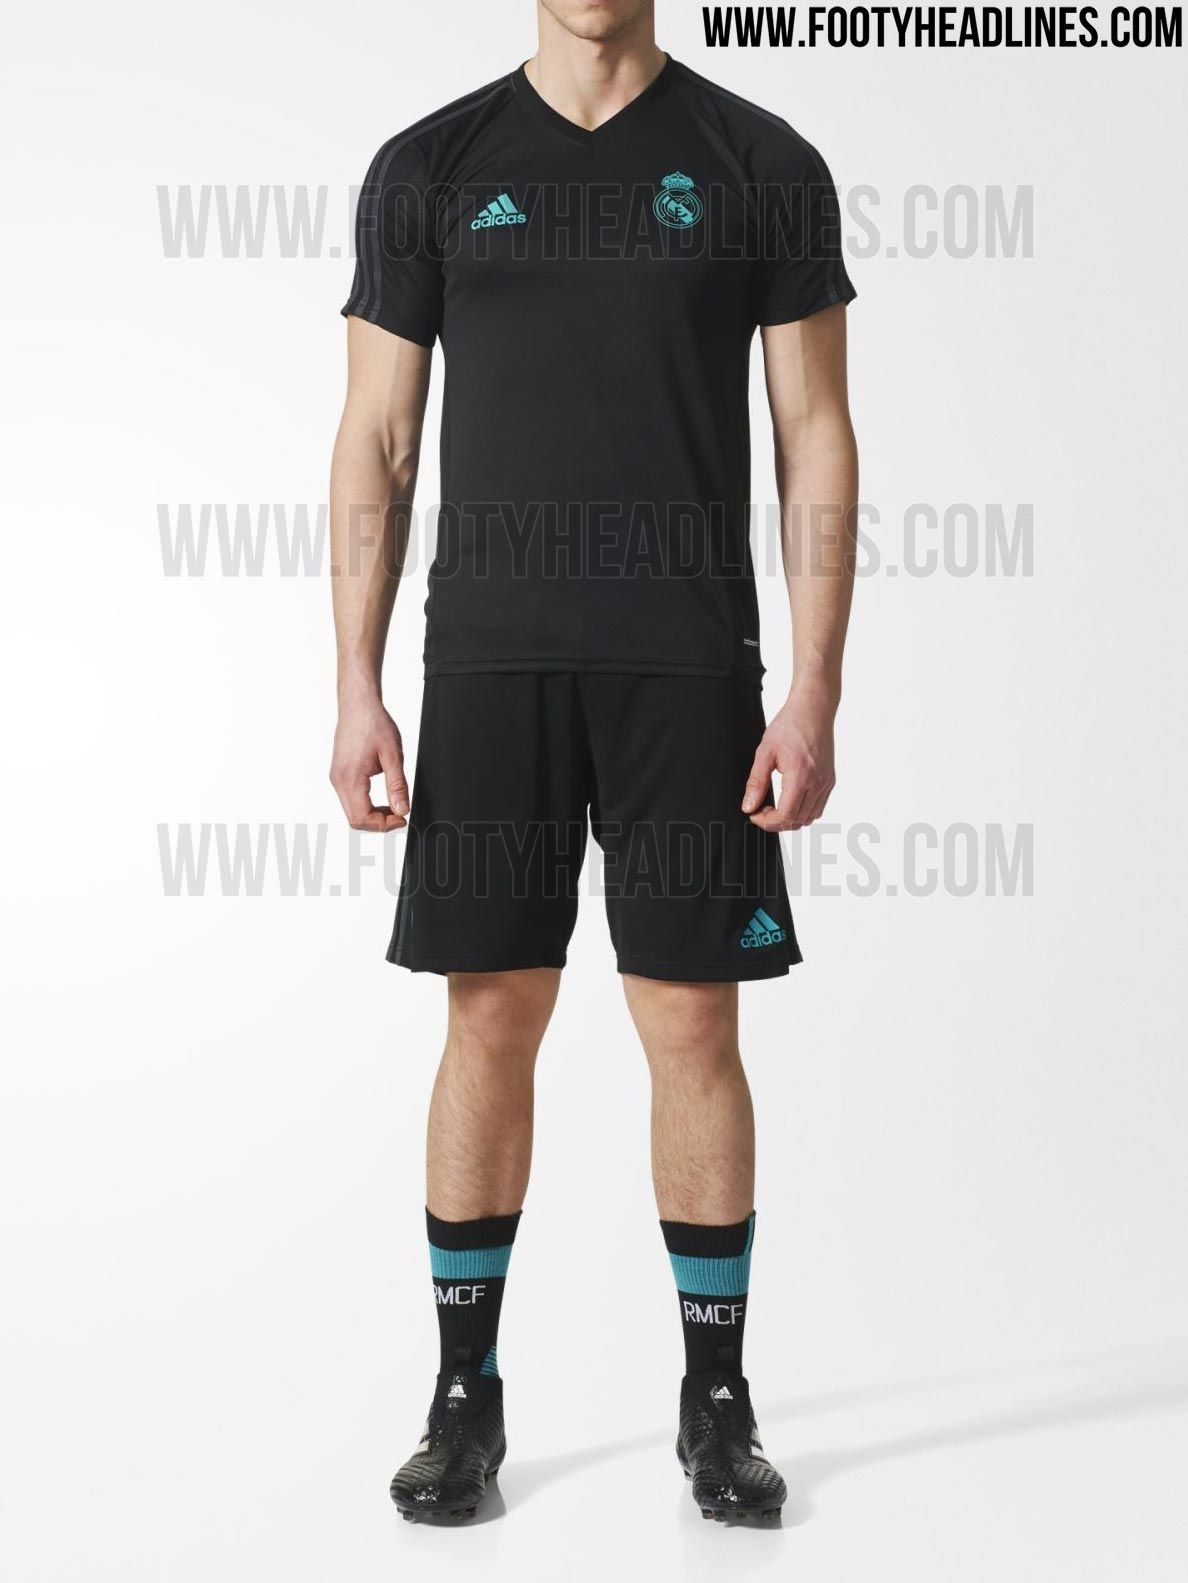 As always, Adidas has prepared a clean look for the Real Madrid training  kits.